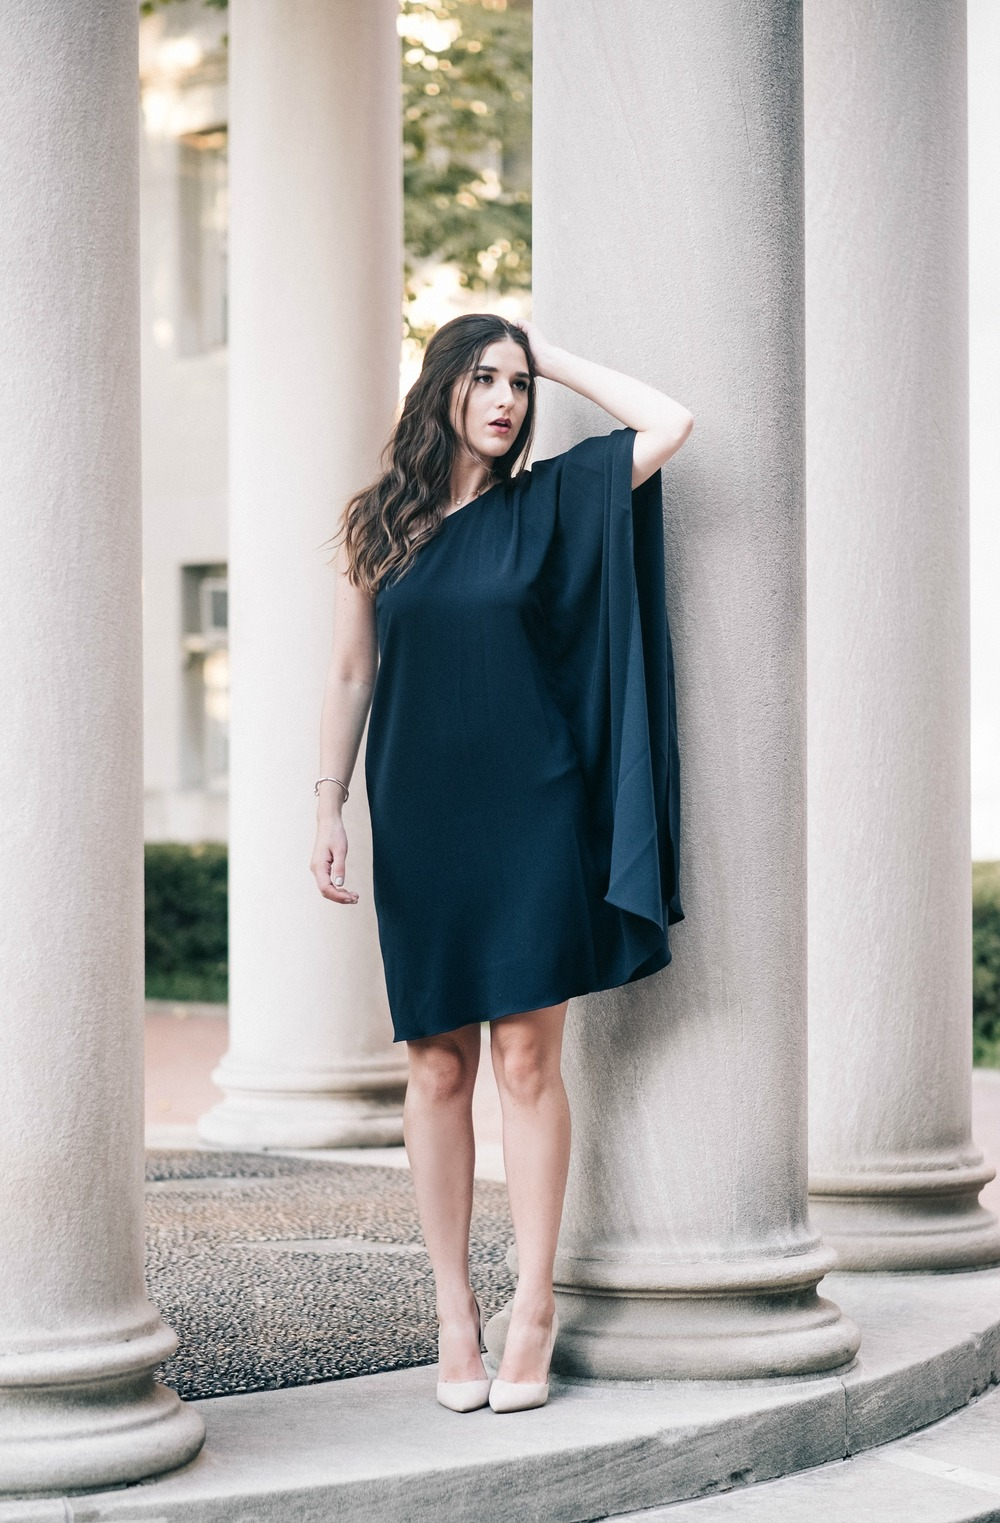 One Shoulder Dress Jay Godgrey Louboutins & Love Fashion Blog Esther Santer NYC Street Style Blogger Outfit OOTD Trendy Girl Women Elegant Fancy Attire Hair Inspo Photoshoot Nude Heels Steve Madden Gold Jewelry Navy Shopping Pretty Beautiful Buy Shoes.jpg